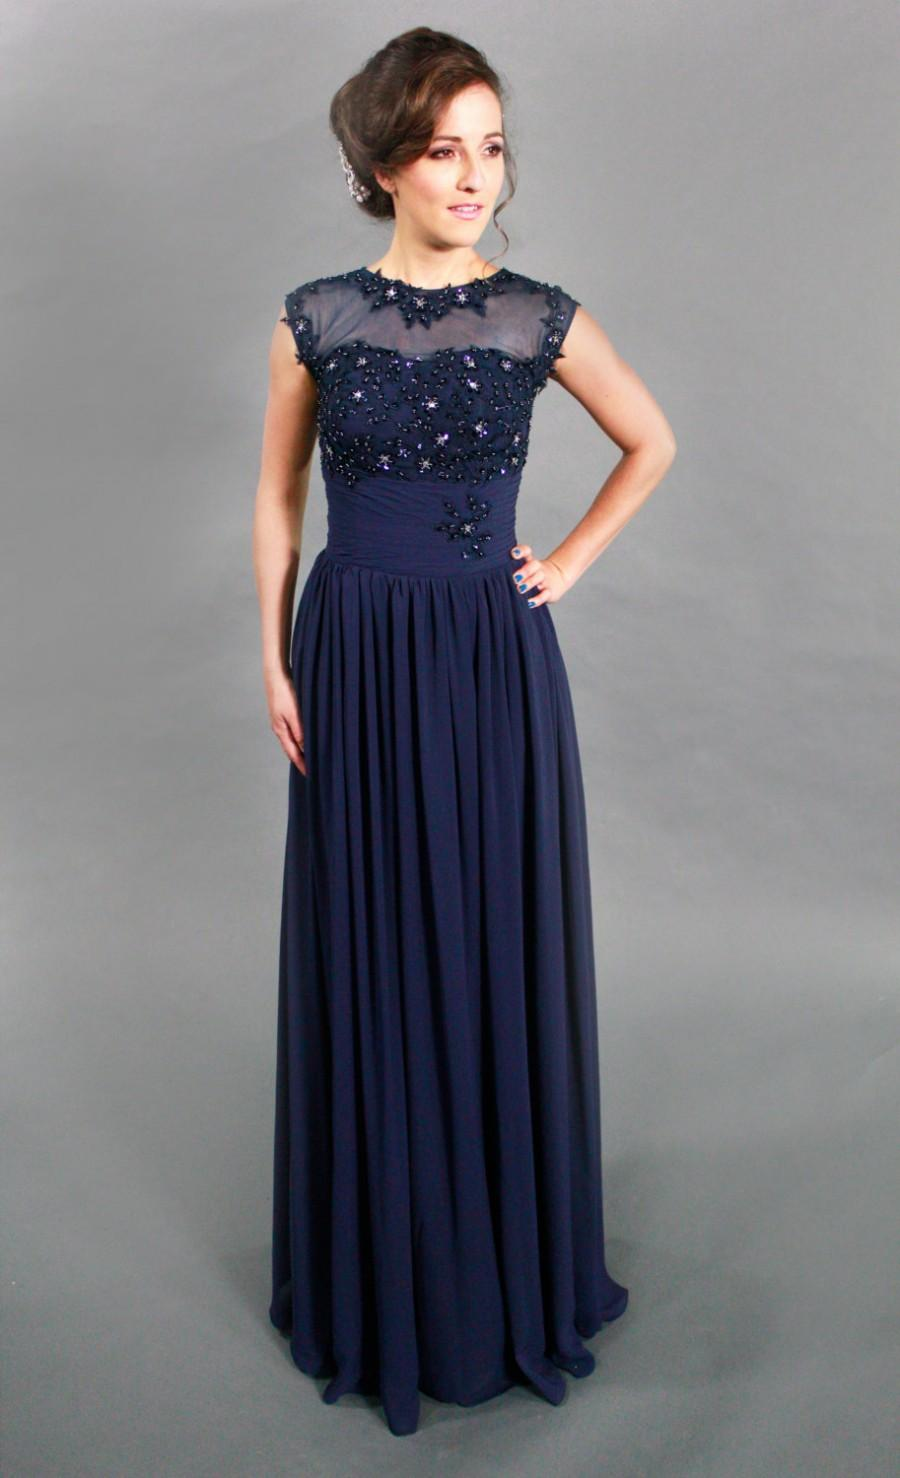 Mariage - High Quality Beaded illusion Lace Cap Formal Navy Evening Dress, Prom Dress